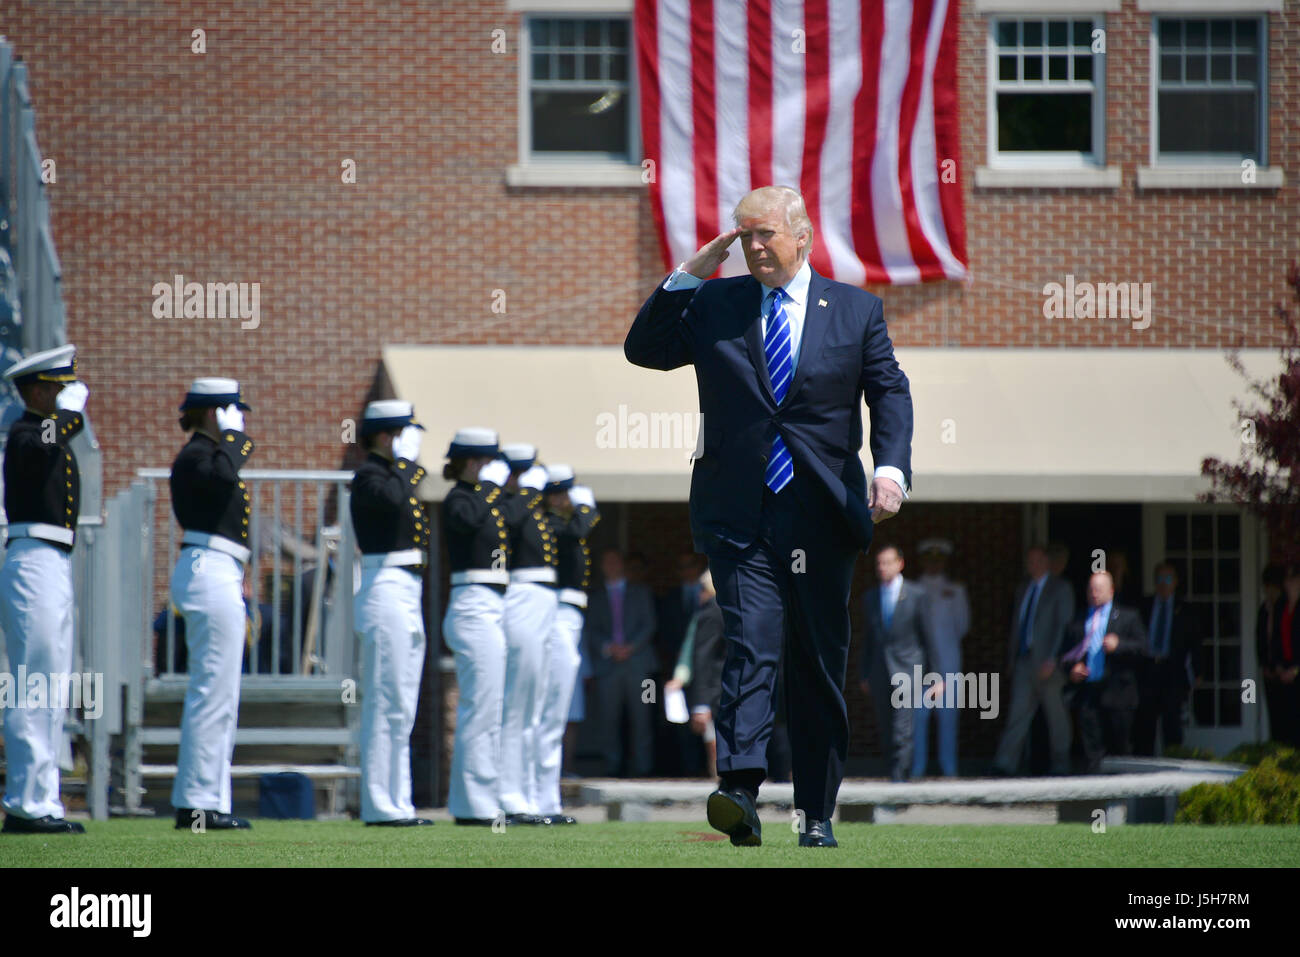 New London, USA. 17th May, 2017. U.S. President Donald Trump salutes as he arrives for the 136th Coast Guard Academy - Stock Image